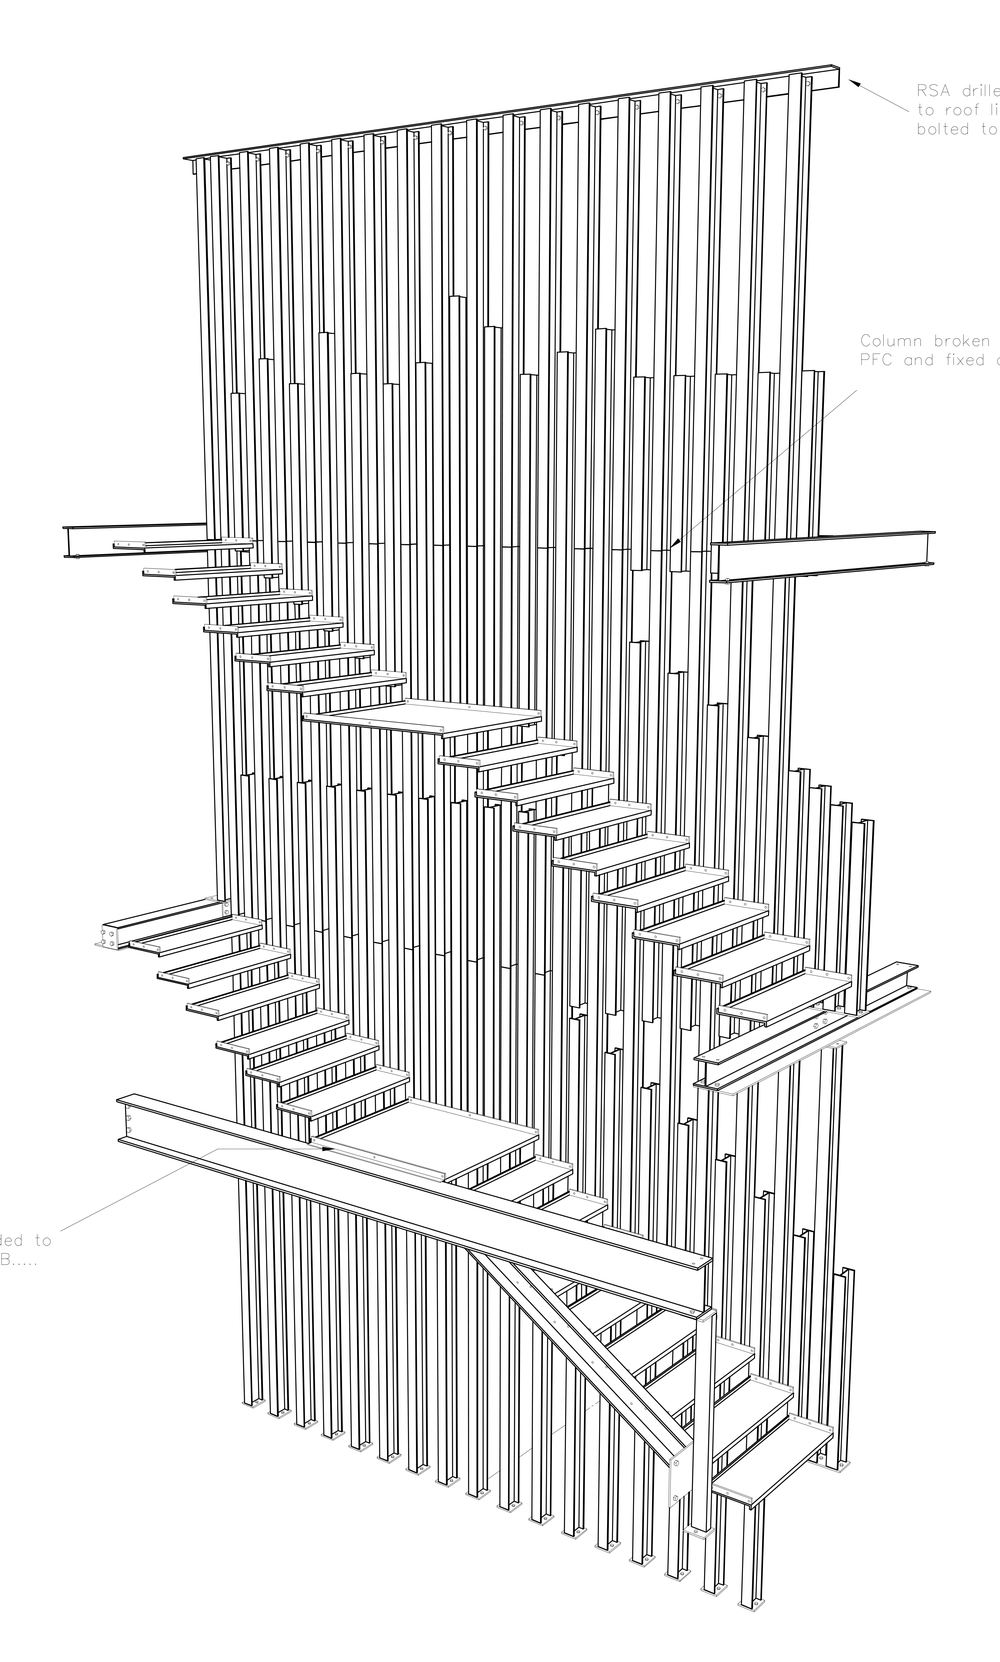 3d steel manufacture drawing for main staircase courtesy of Larkins Engineering Ltd